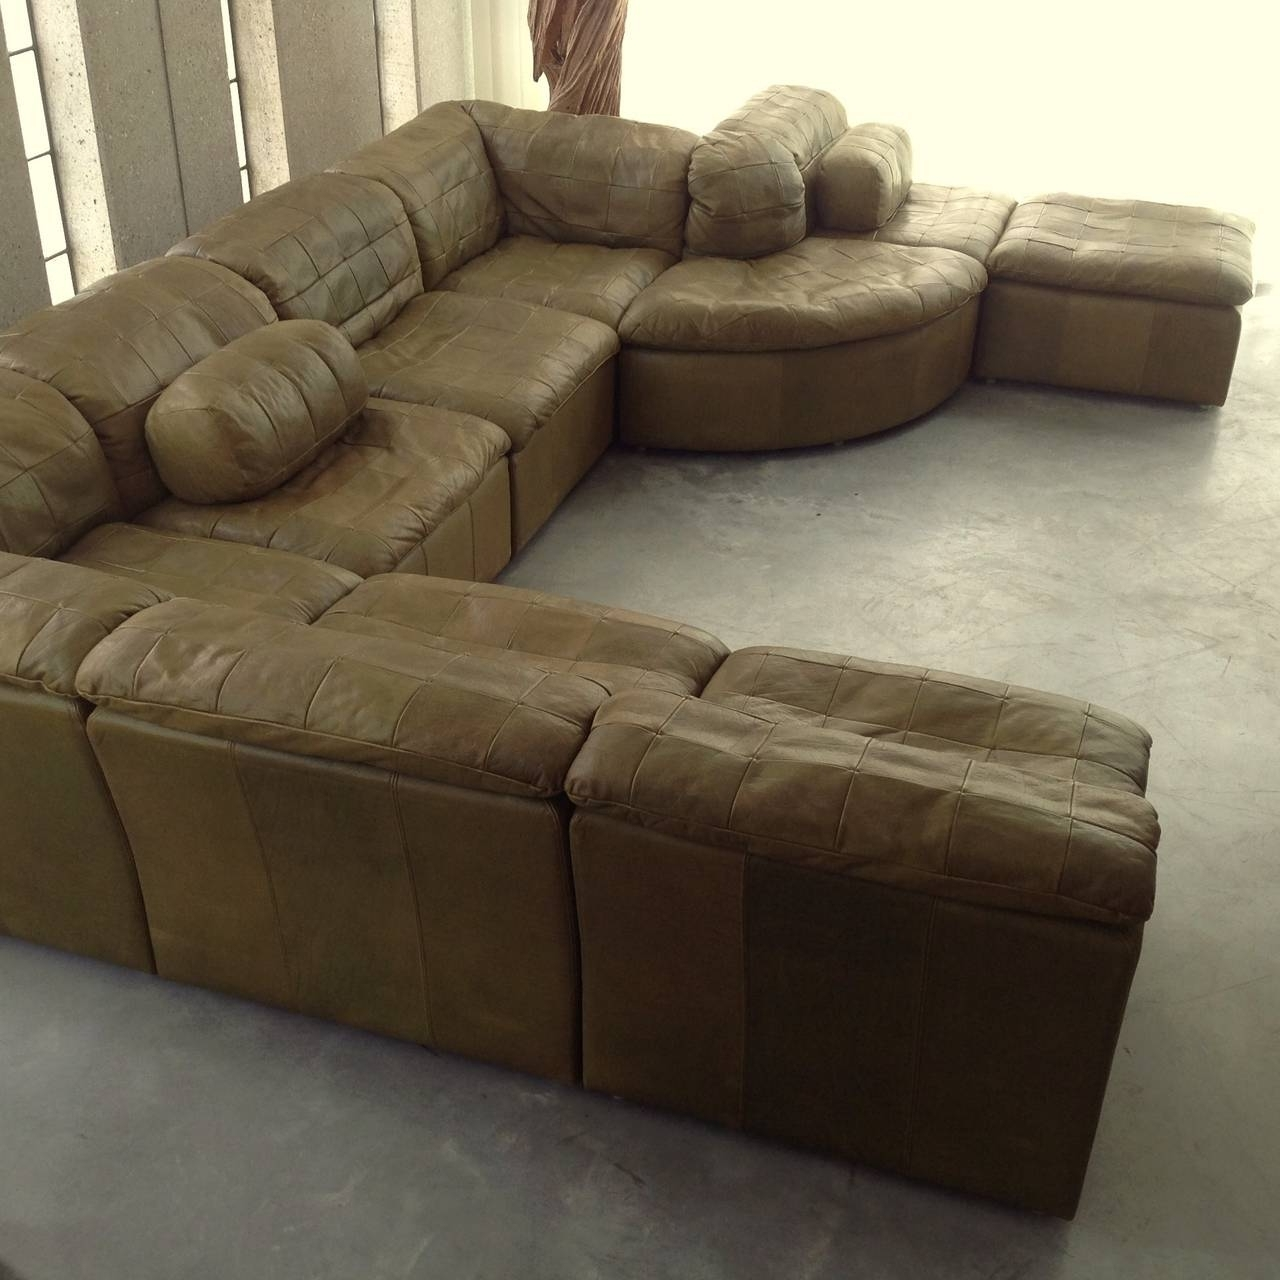 Tucson Sectional Sofas With Well Known Trend Olive Green Sectional Sofa 57 In Sectional Sofas Tucson With (View 13 of 15)